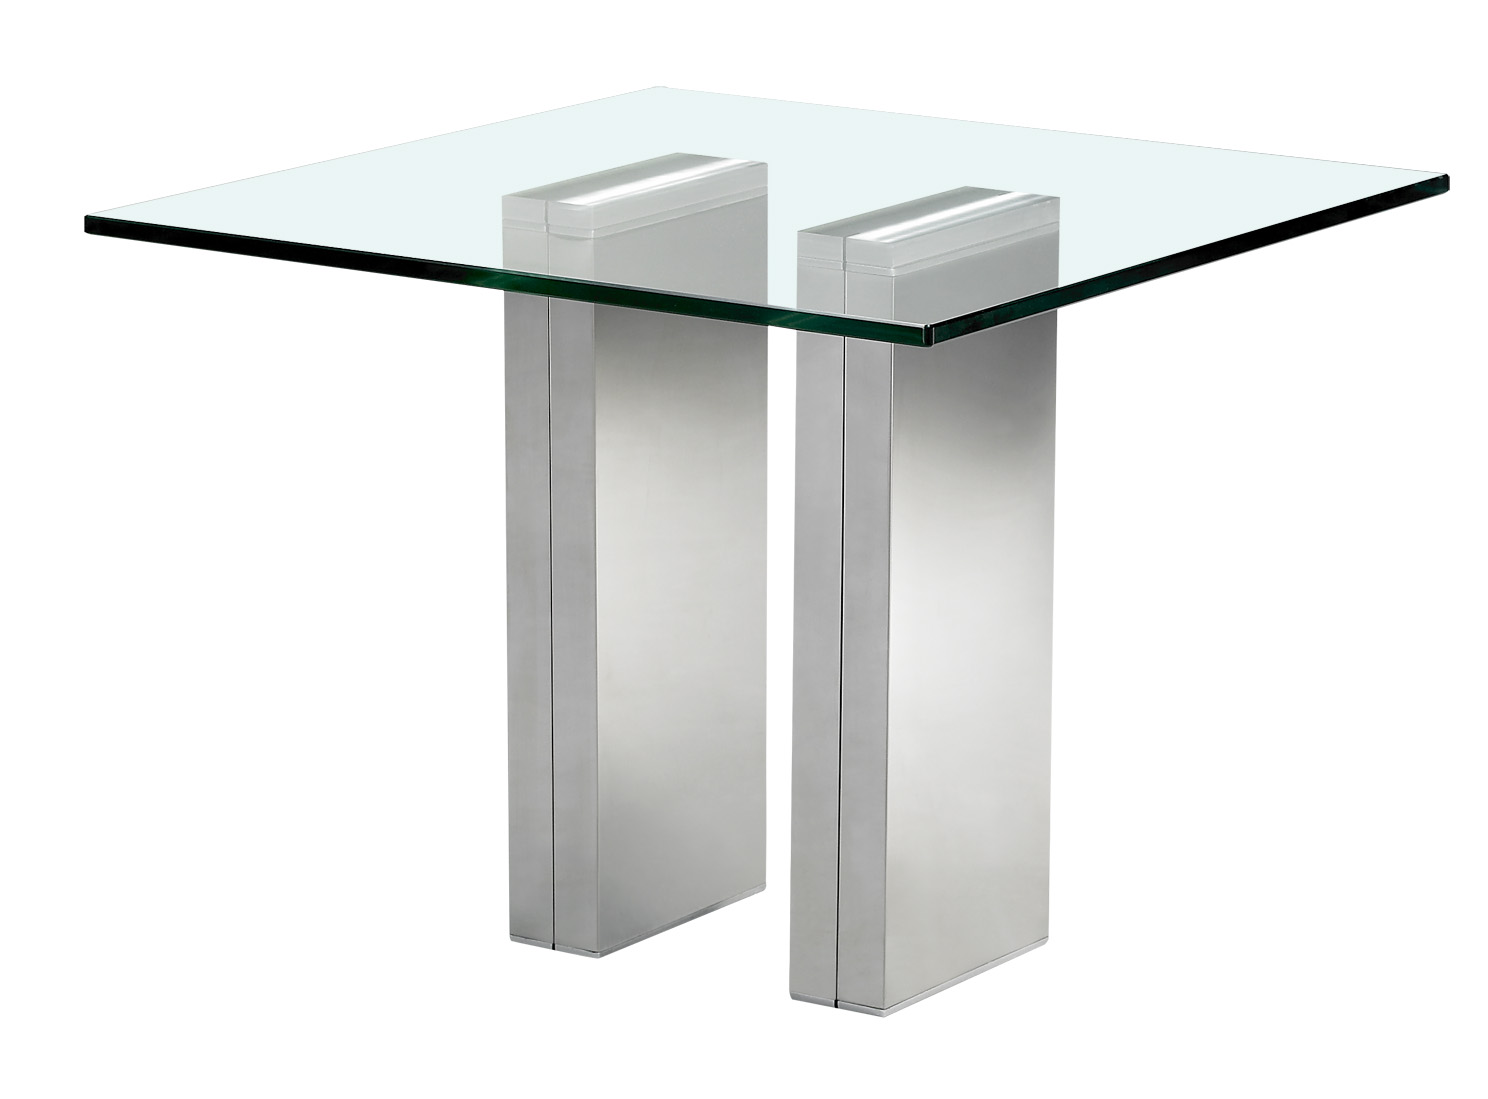 Bout de canap verre tremp et acier chrom brick for Table bout de canape en verre